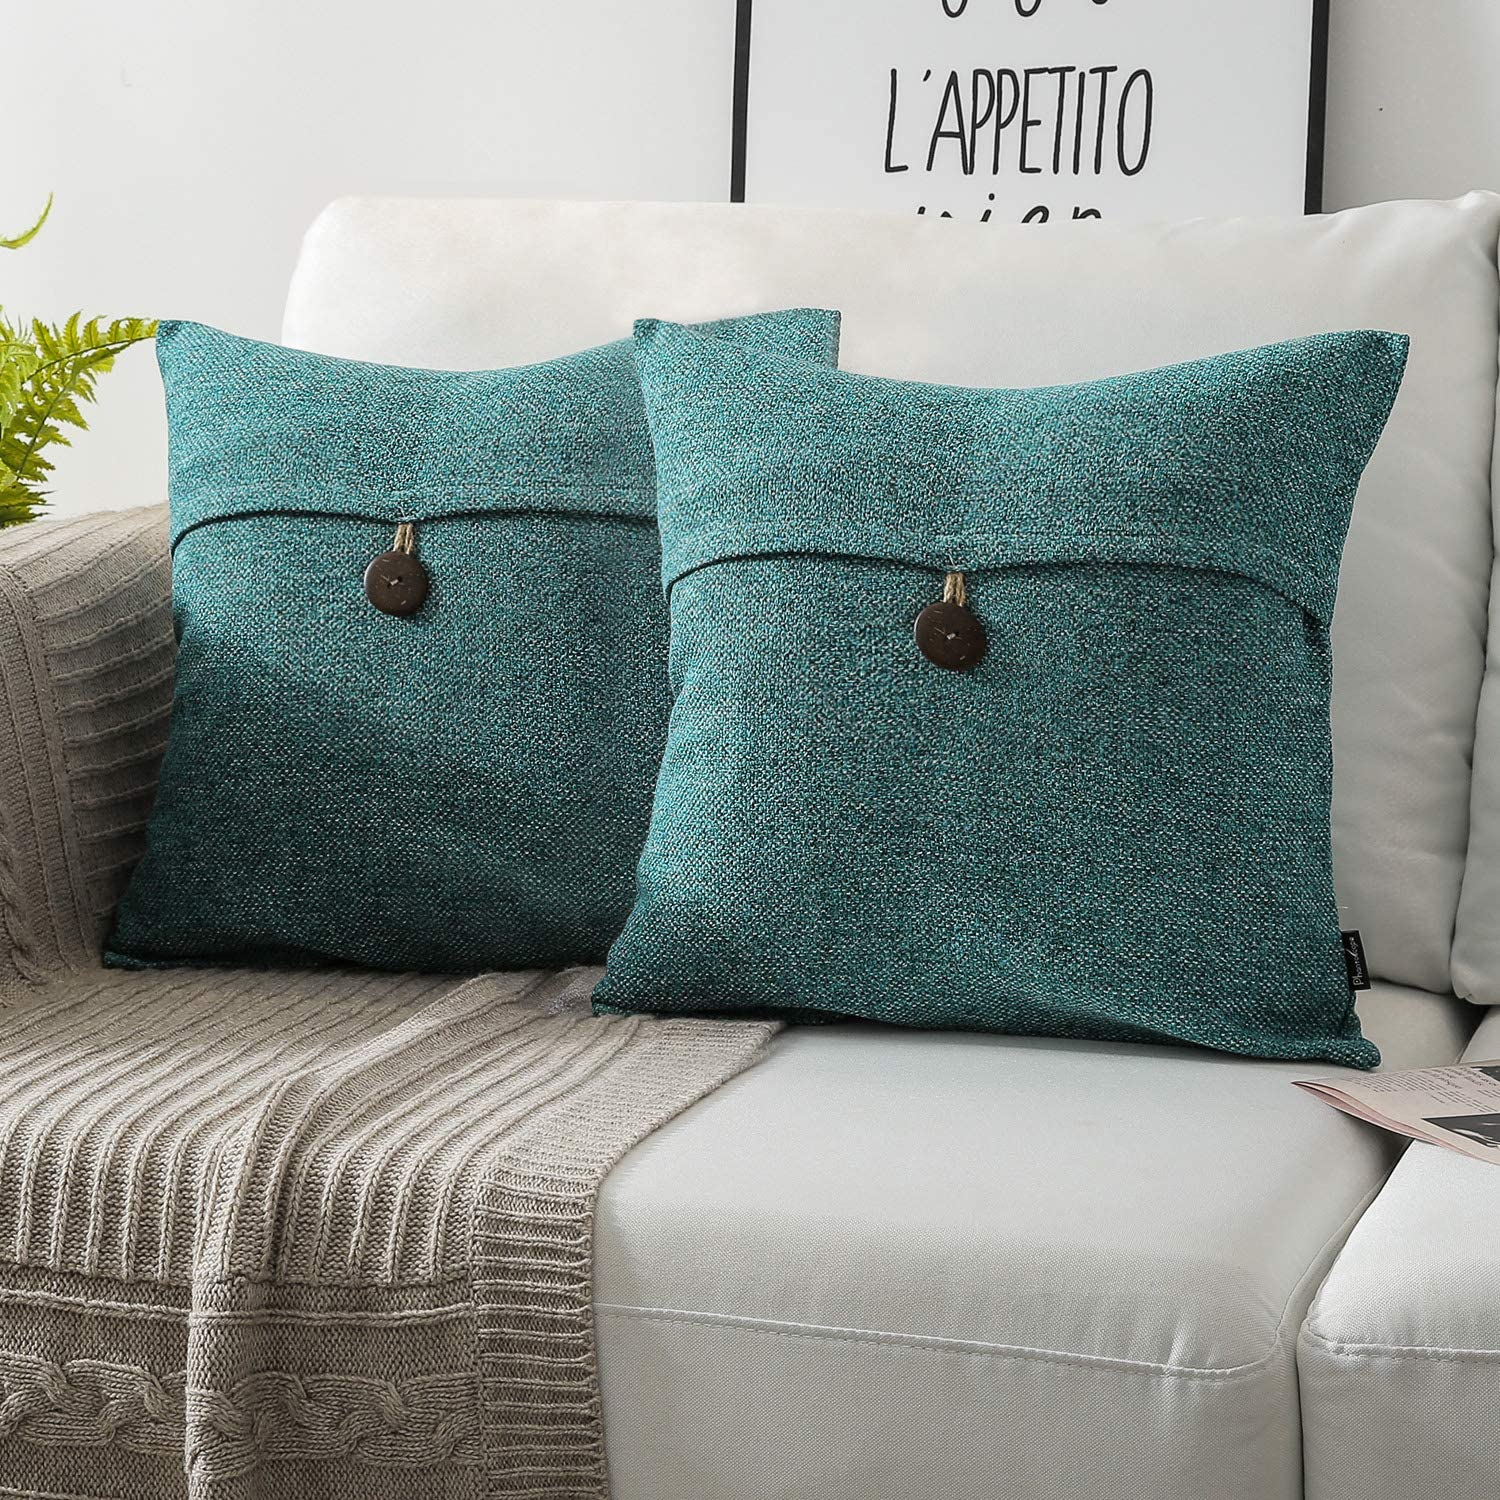 Phantoscope Pack of 2 Farmhouse Throw Pillow Covers Button Vintage Linen Decorative Pillow Cases for Couch Bed and Chair Lake Blue 18 x 18 inches 45 x 45 cm